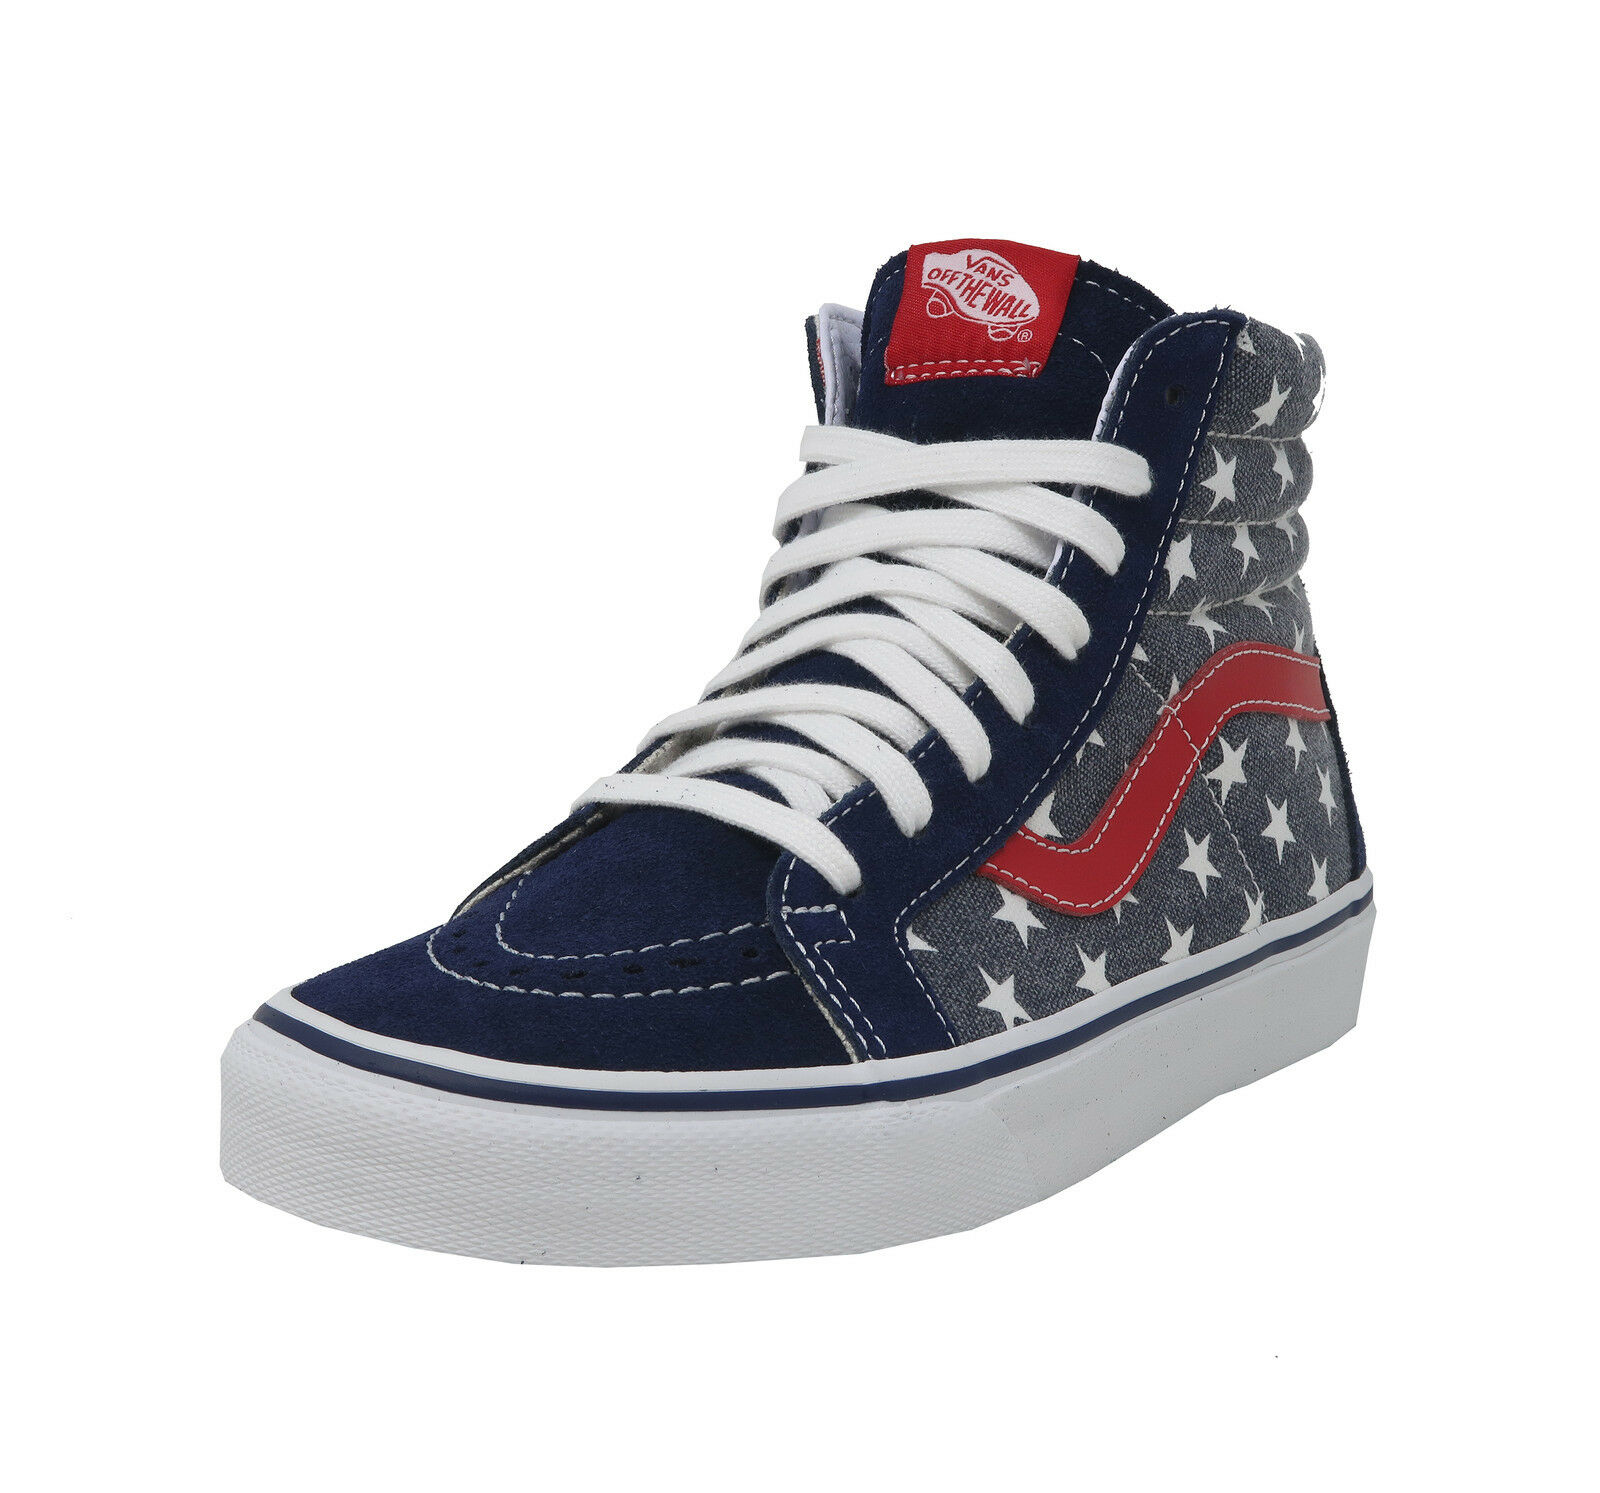 2ef77a5835df9e VANS SK8-Hi Reissue Van Doren Stars       Stripes Navy Red Patriot Sneaker  Men Shoes 32e1c8